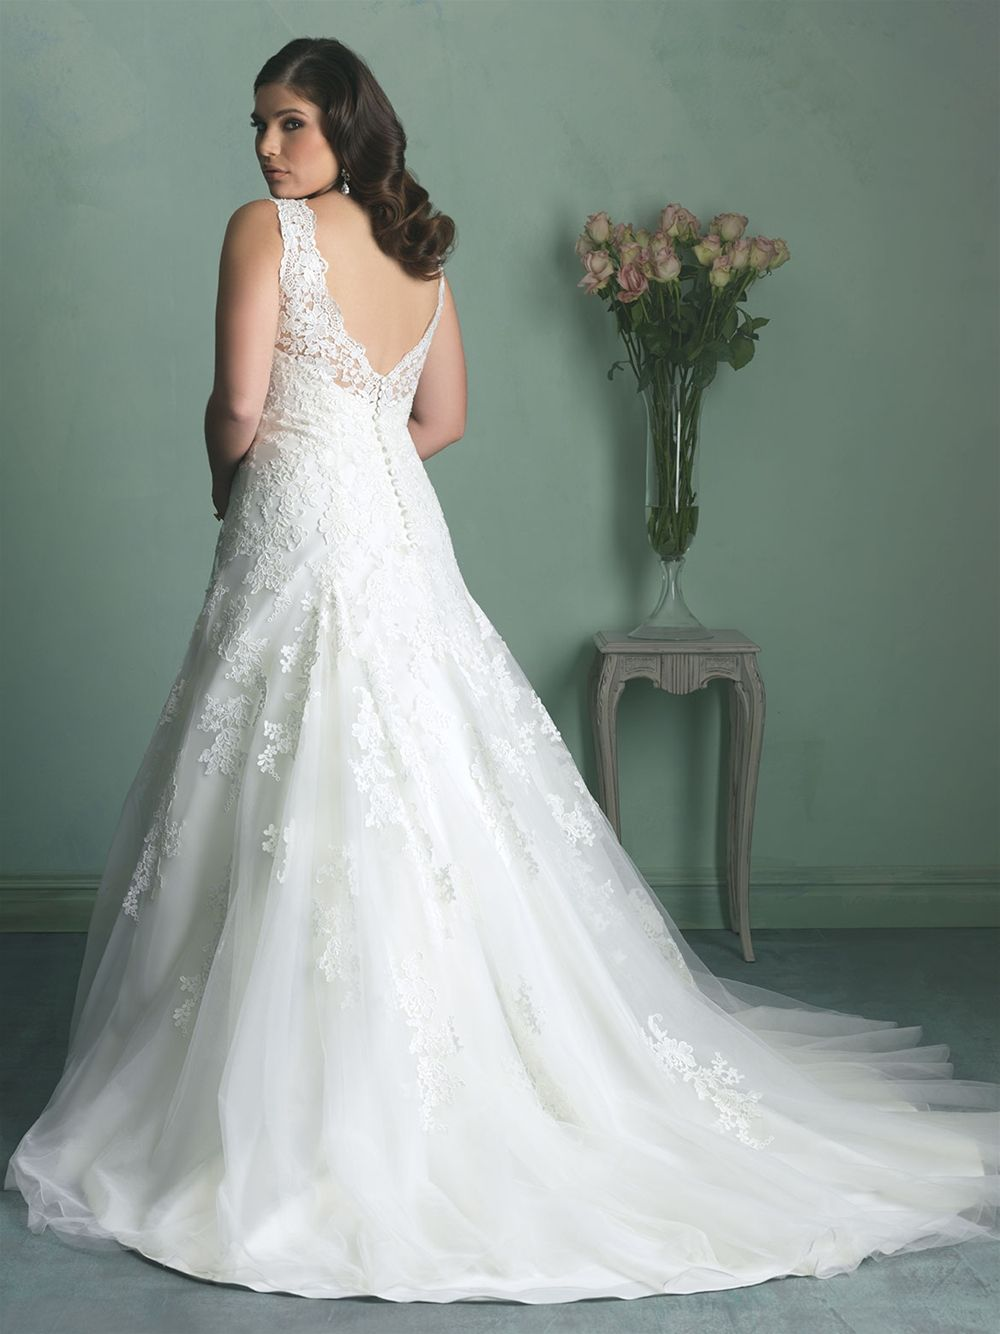 Allure Bridals: Style: W343 | Wedding: A Girl Can Dream! | Pinterest ...